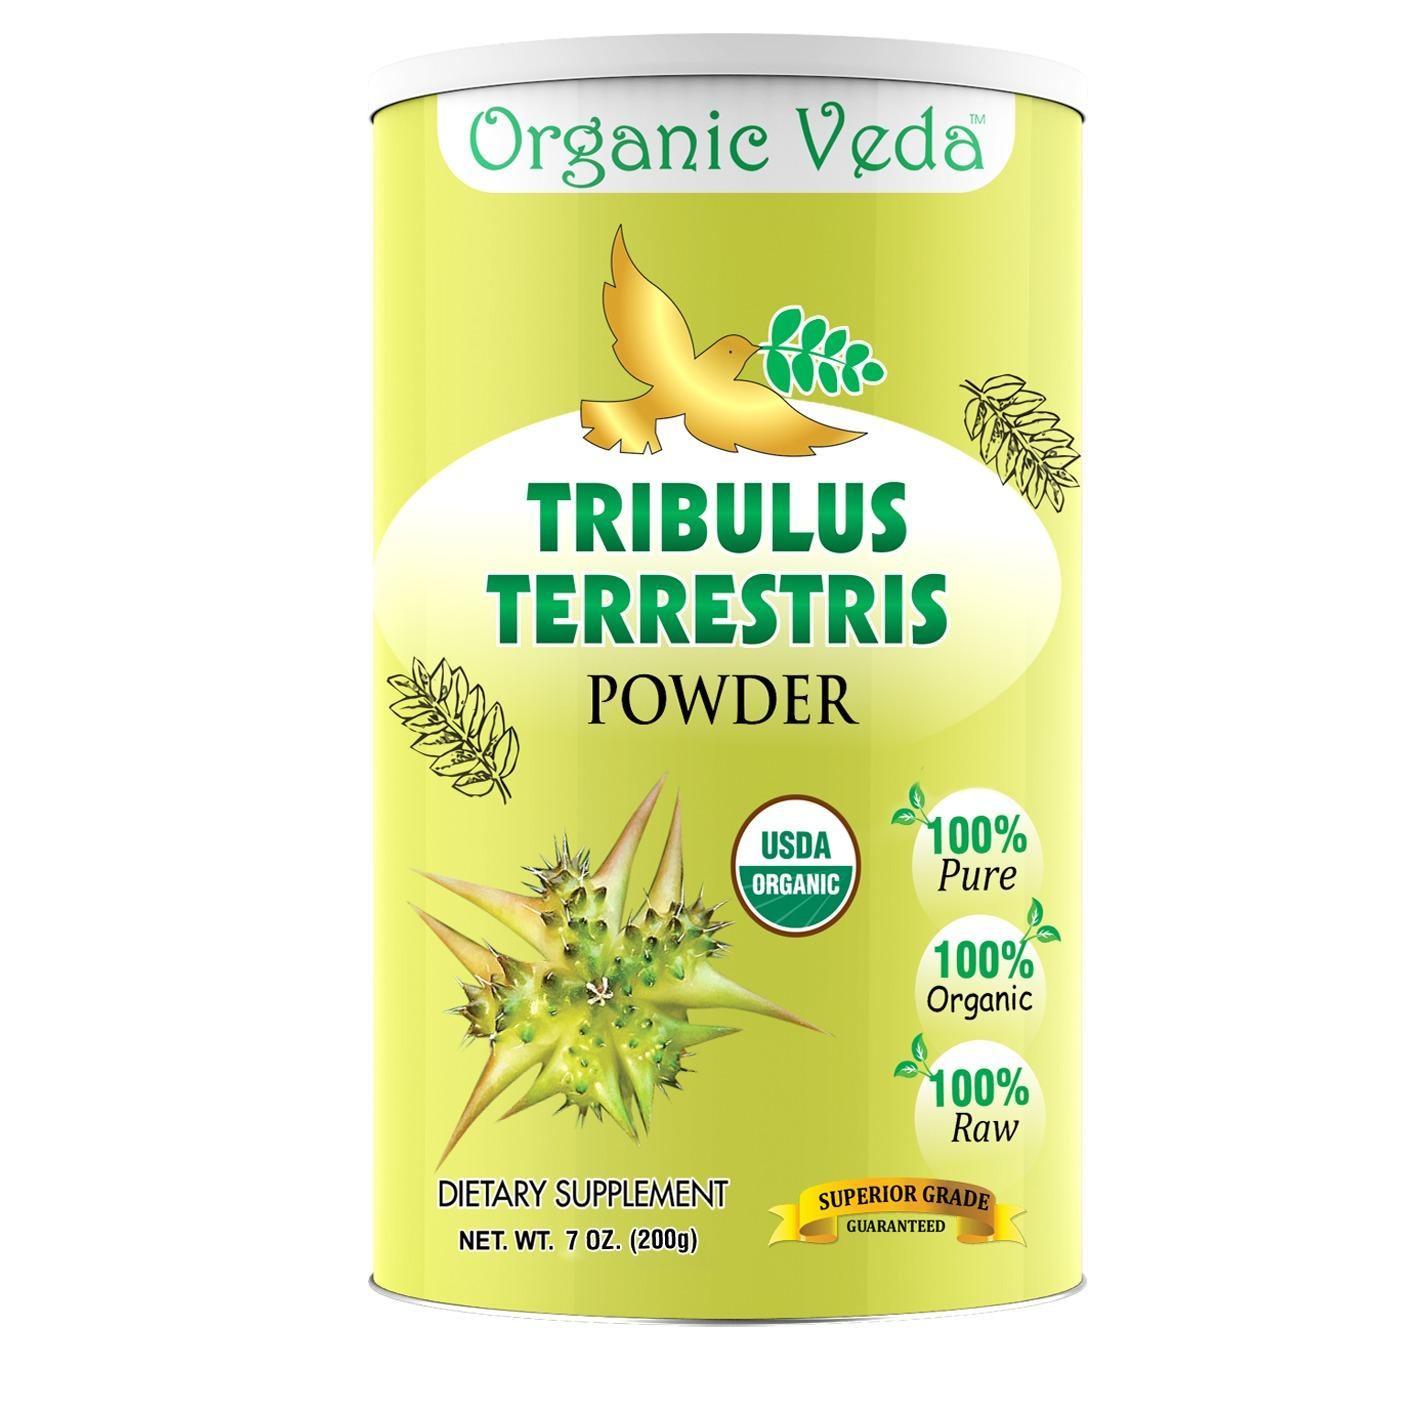 Cheap Organic Tribulus Terrestris Powder 200Grams 100 Pure And Natural Herbs Raw Organic Super Food Supplement Non Gmo Gluten Free Us Fda Registered Facility ★ Usda Certified Organic ★ All Natural